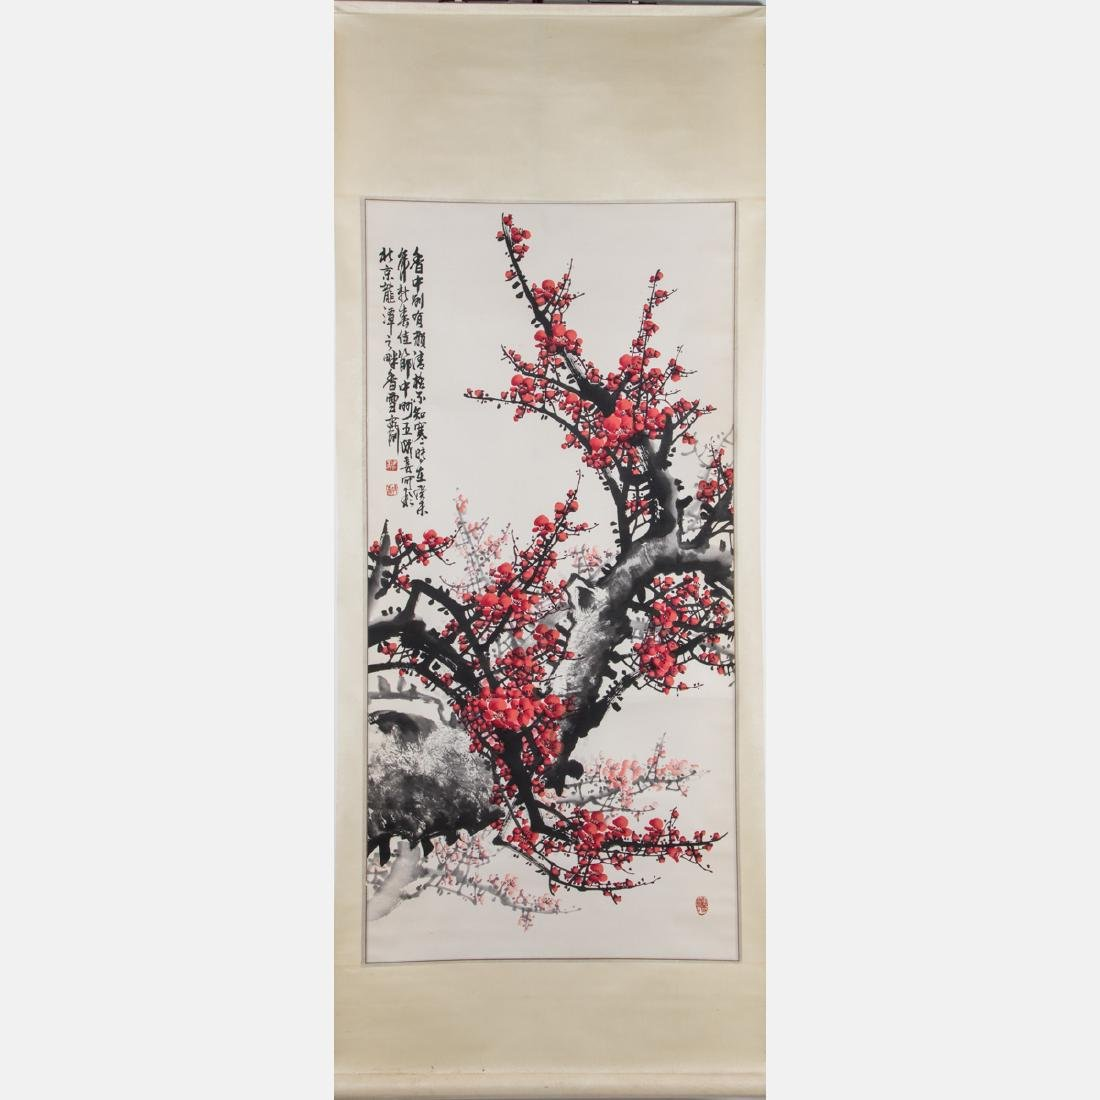 A Chinese Calligraphy Scroll Depicting a Cherry Blossom